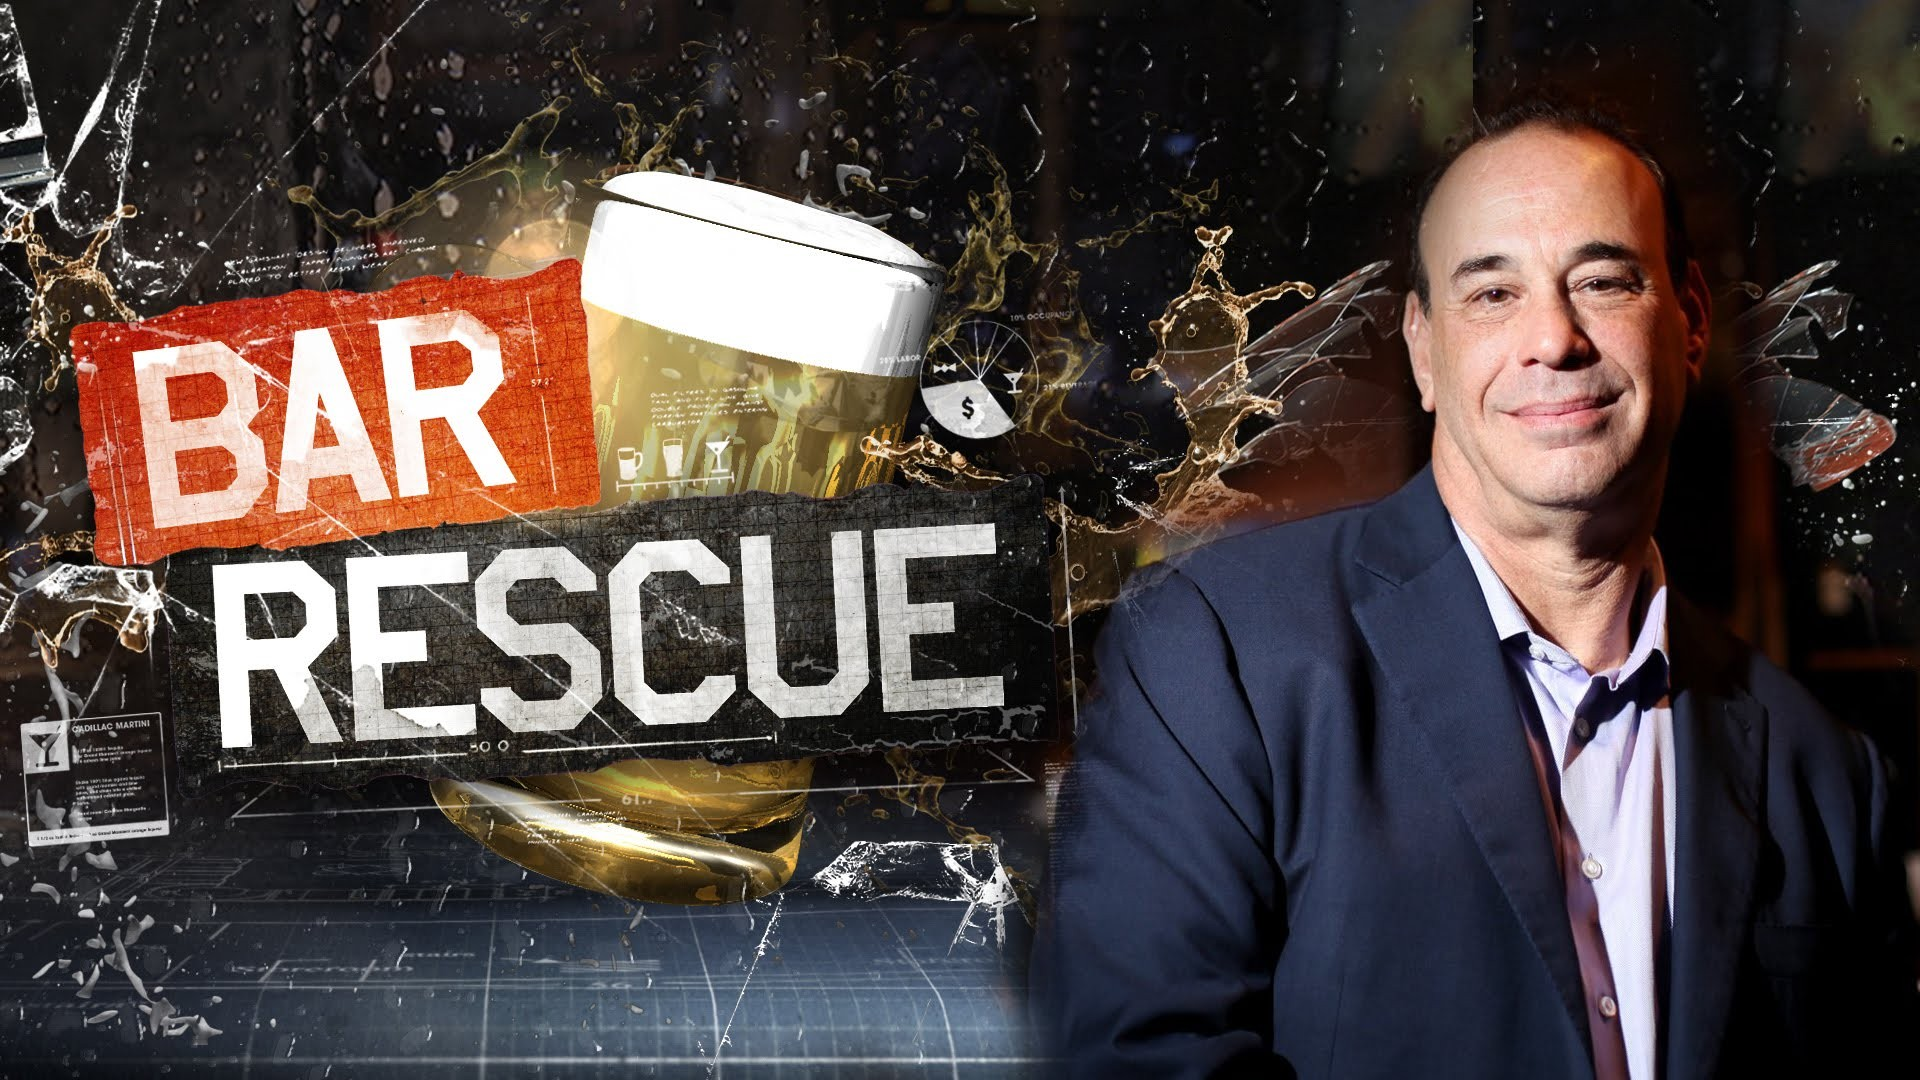 Spike tvs bar rescue looking for participants in pittsburgh blogh photo courtesy of spike tv forumfinder Image collections